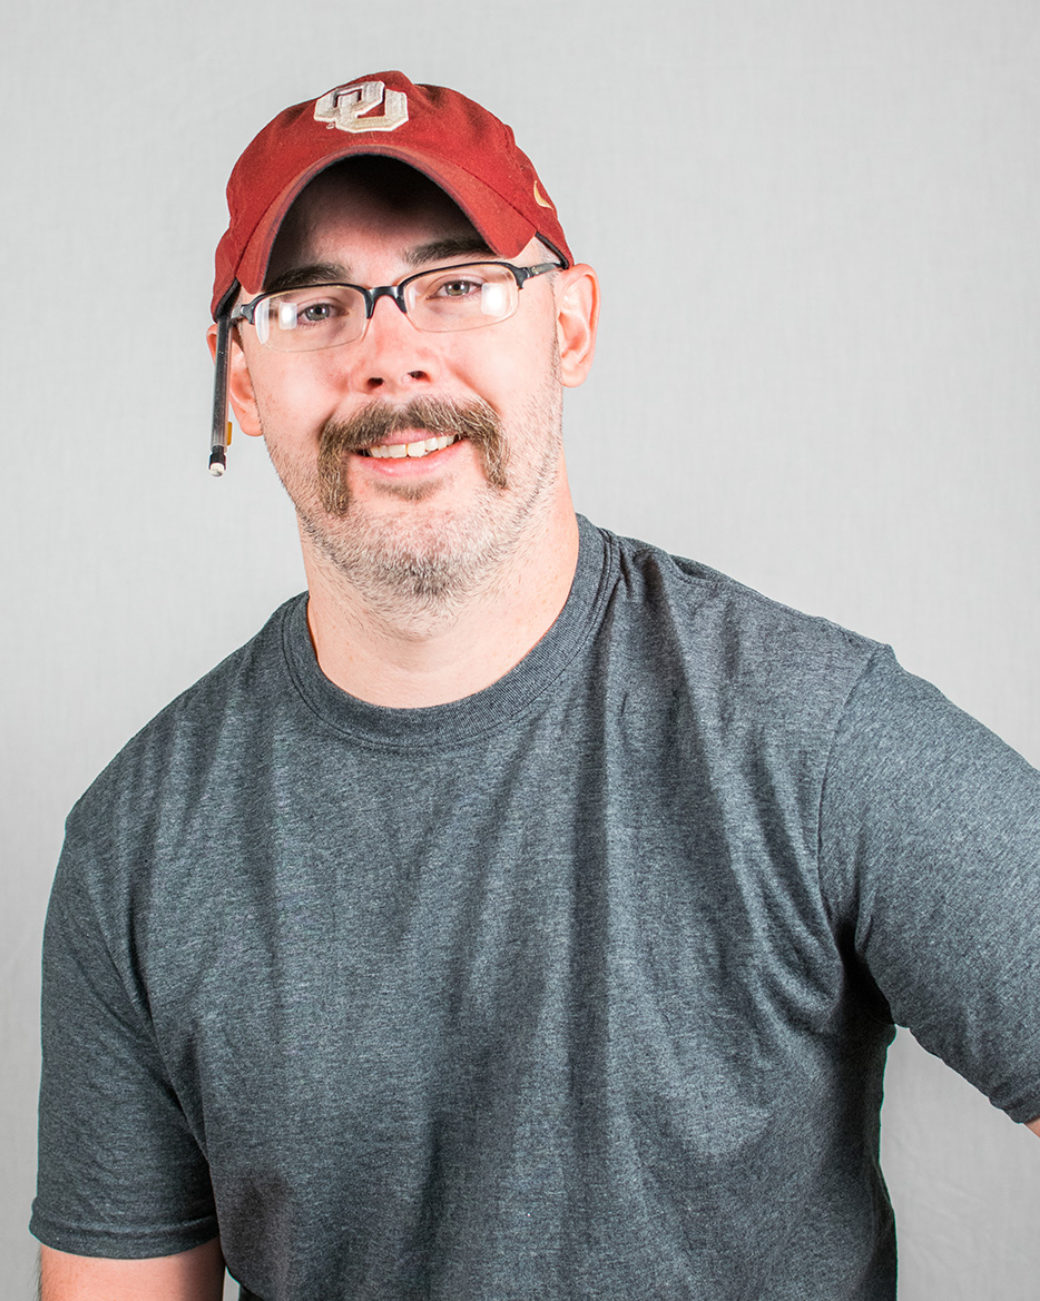 An adult wears a gray shirt and red hat with a pencil in it